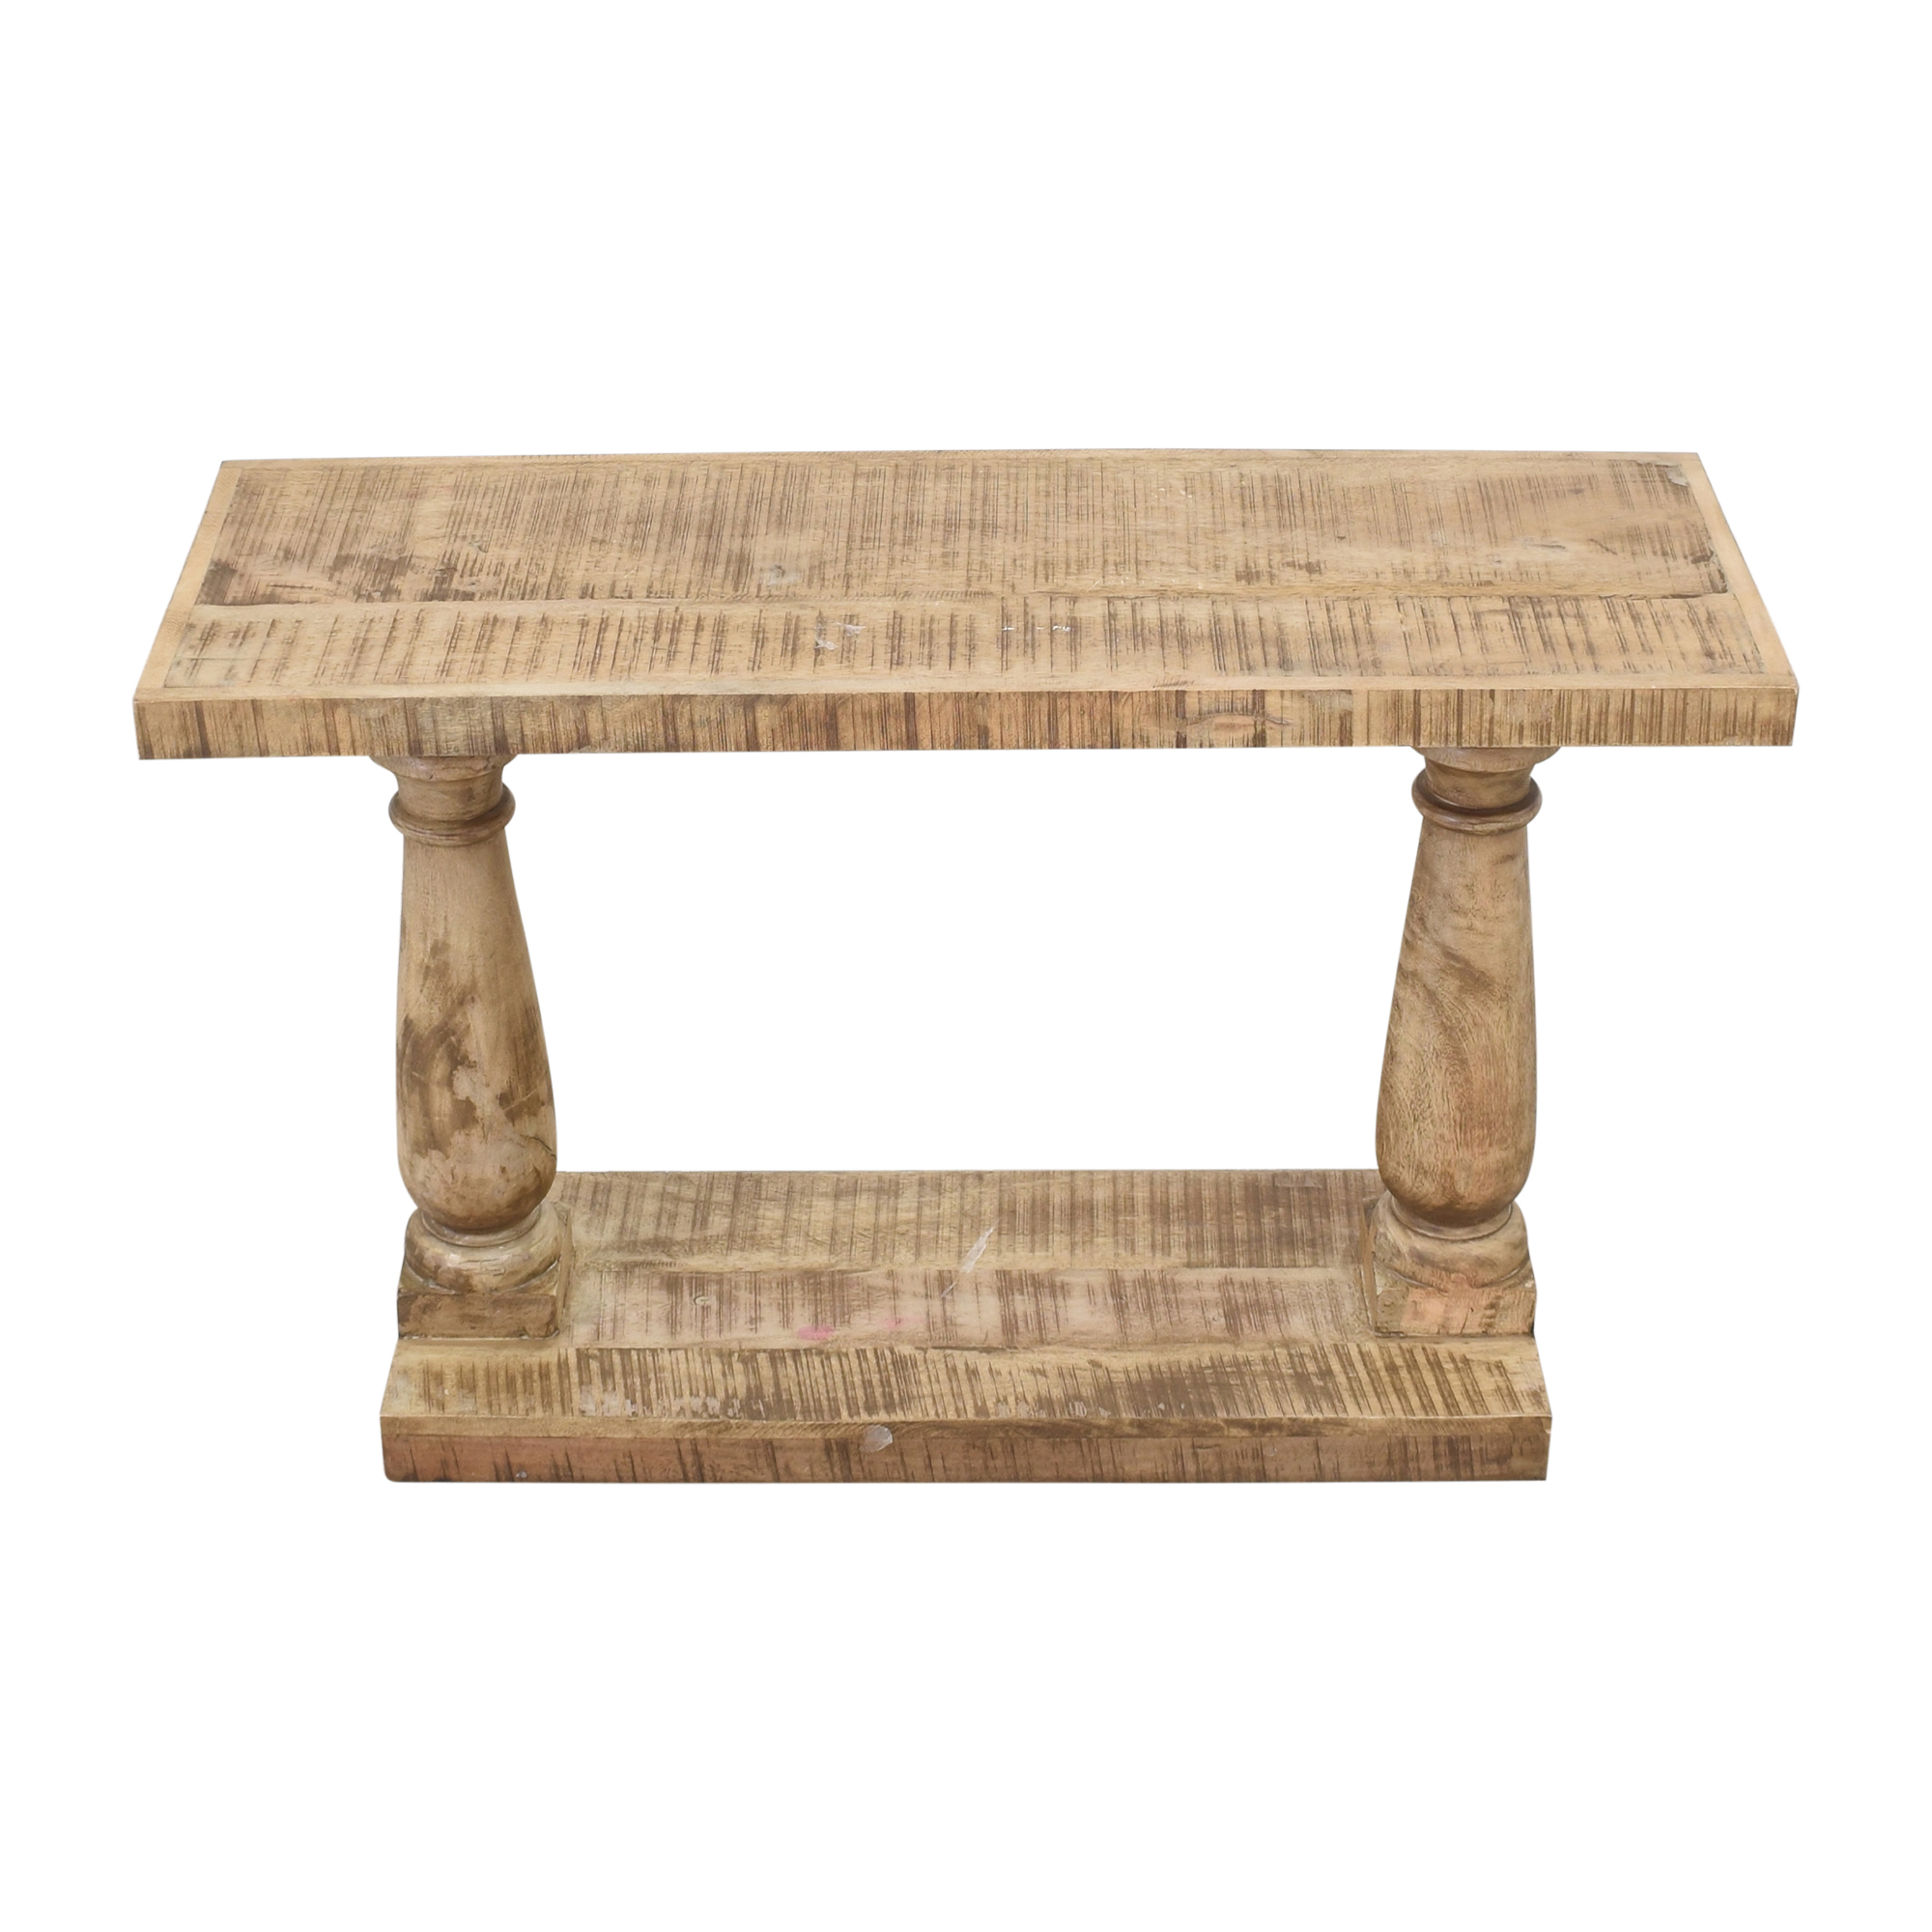 Macy's Macy's Rustic Turned Leg Console Table Tables